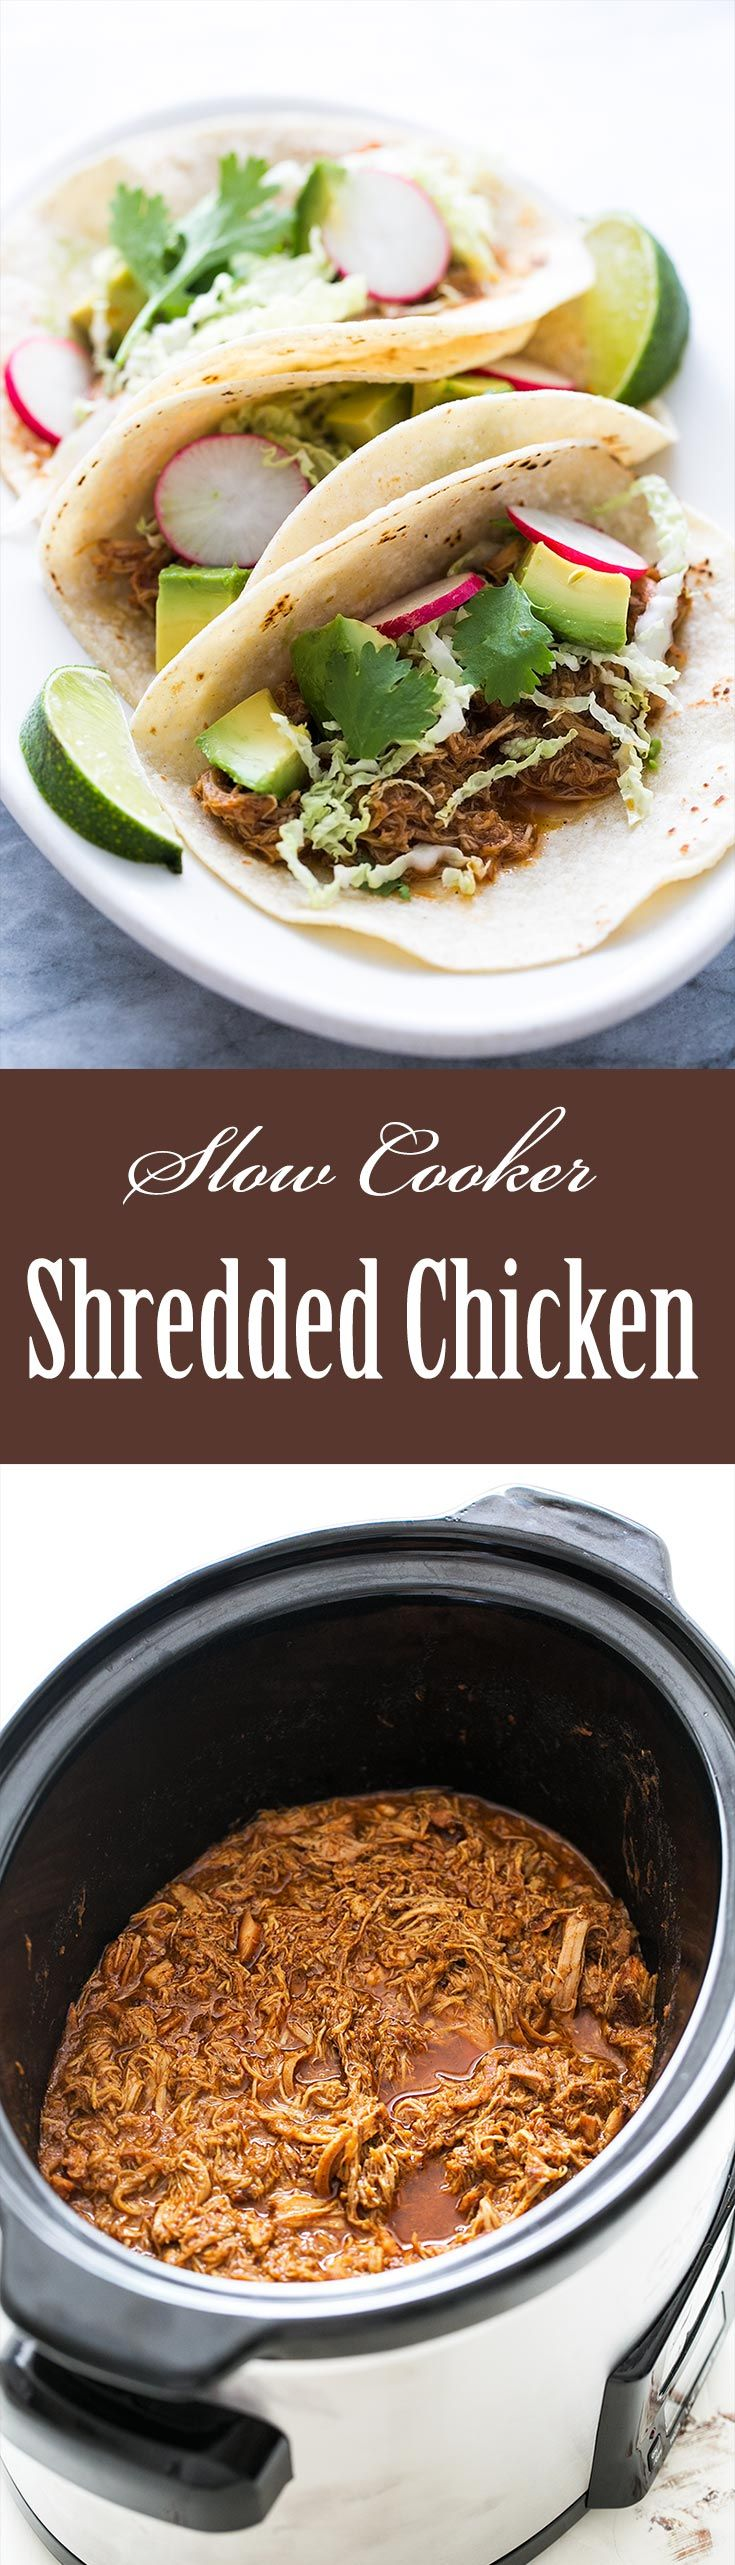 Slow cooker shredded chicken thighs, perfect filling for tacos and burritos! So easy, only 10 minutes prep. Chicken thighs coated in chili rub, then slow cooked until tender and easily pulled apart into shreds with a fork. On SimplyRecipes.com